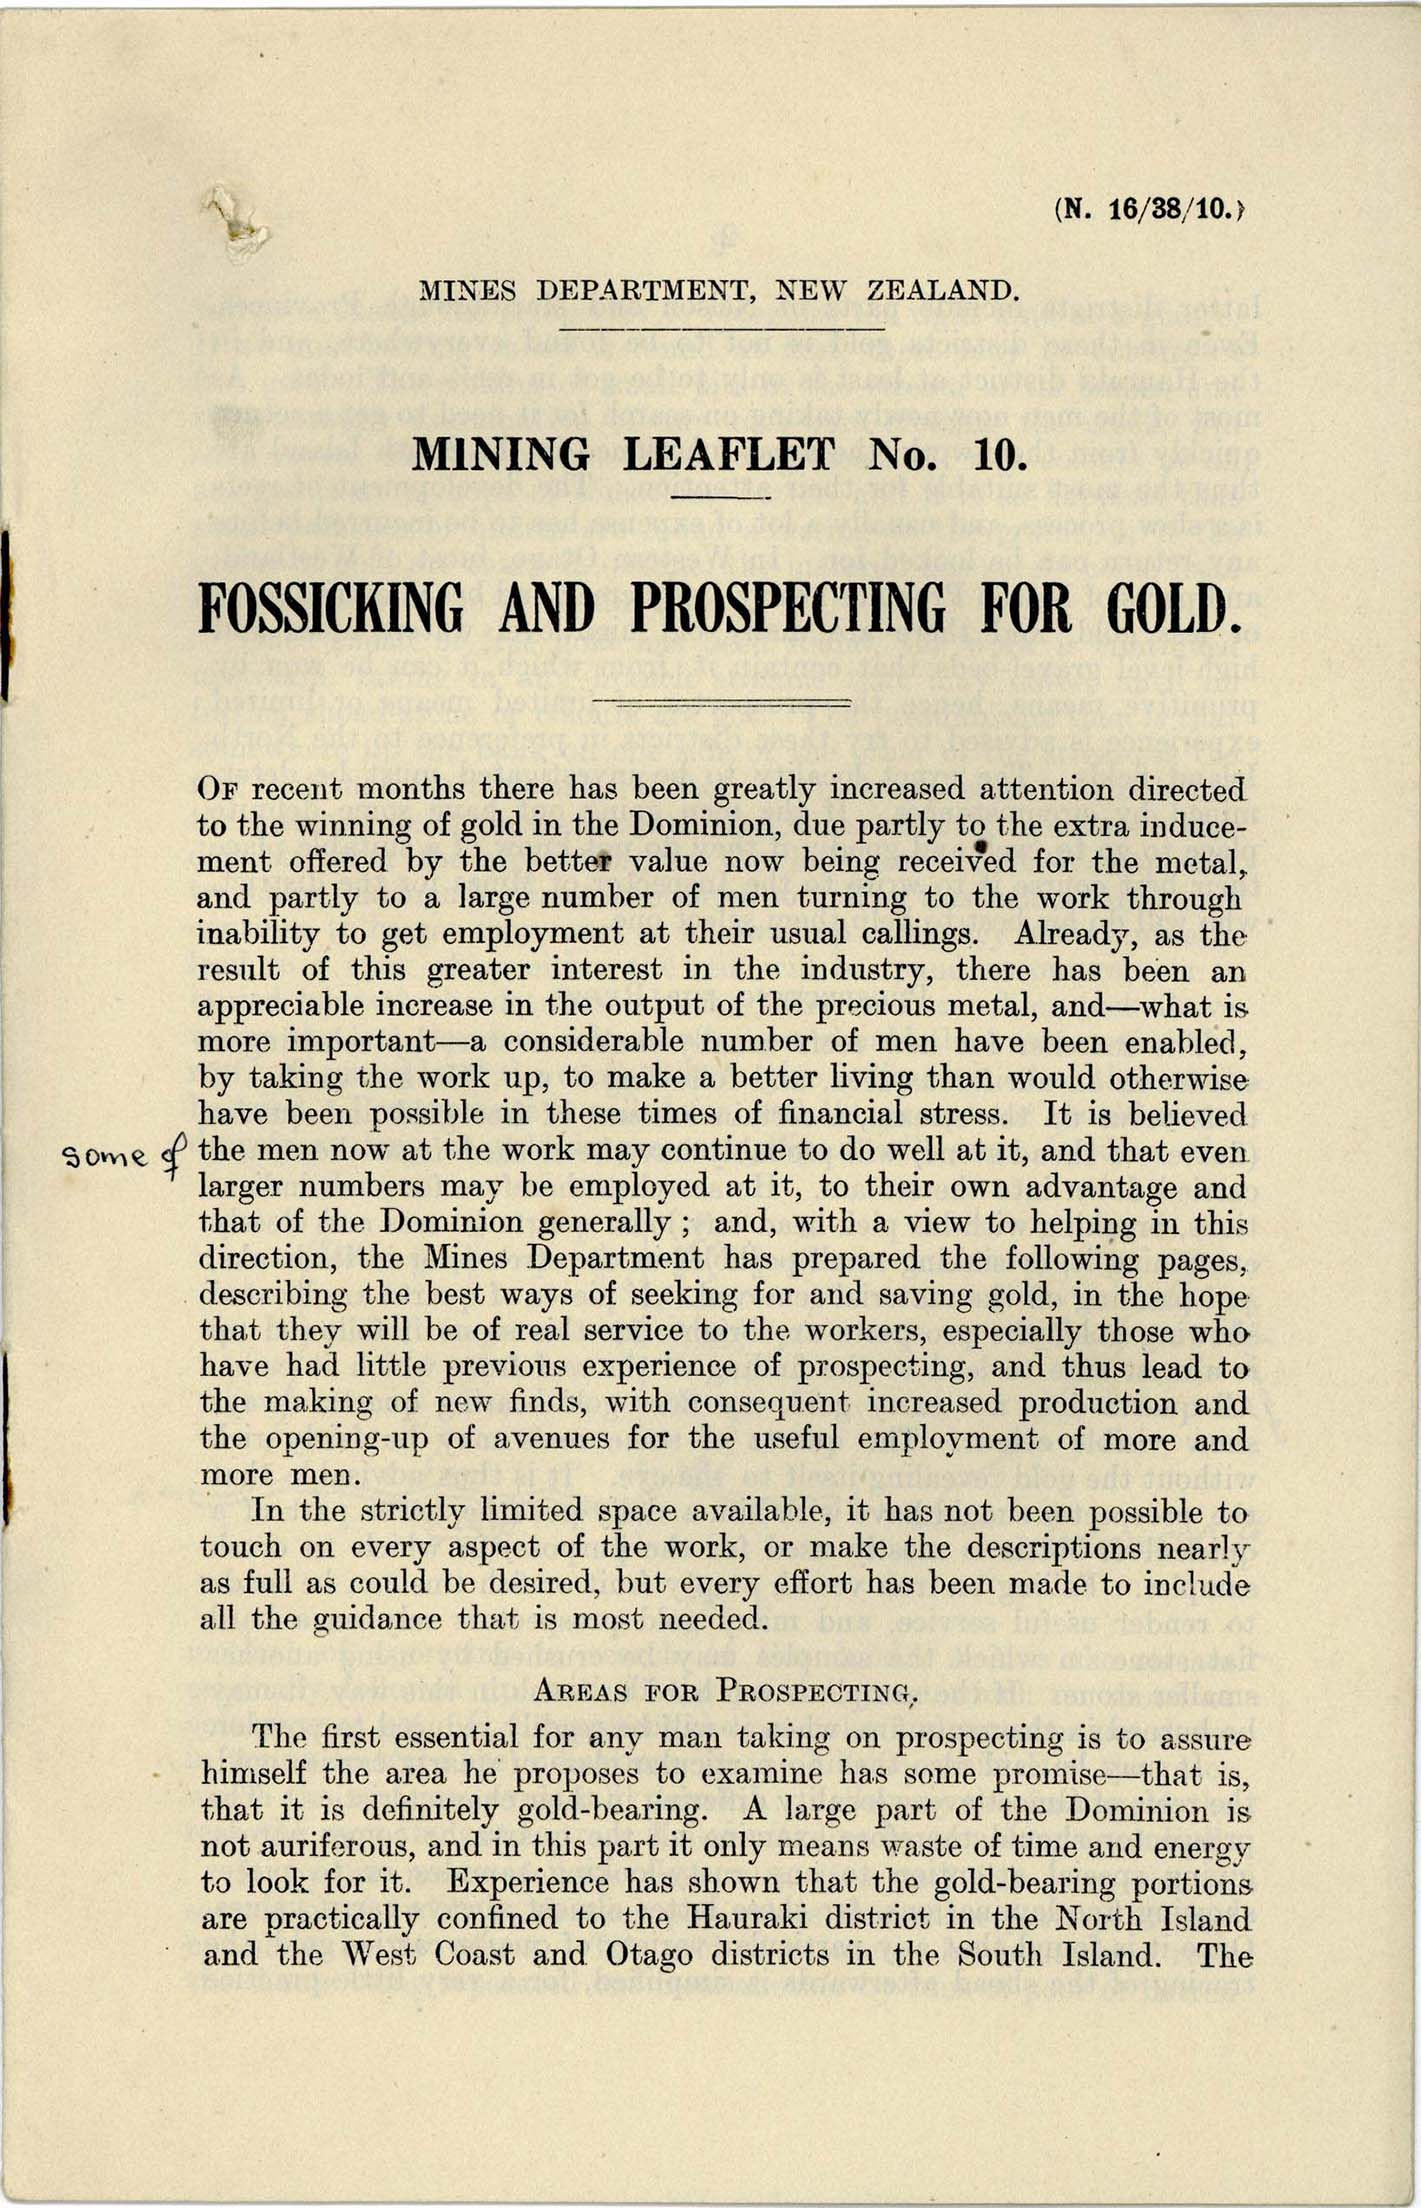 Excerpt from handwritten leaflet